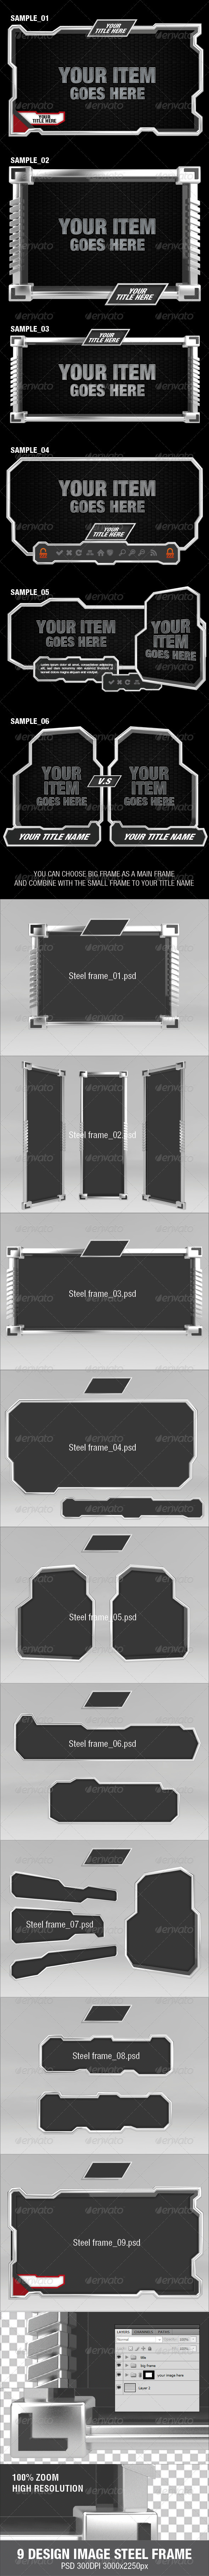 9 Design Image Steel Frame - Miscellaneous Photo Templates